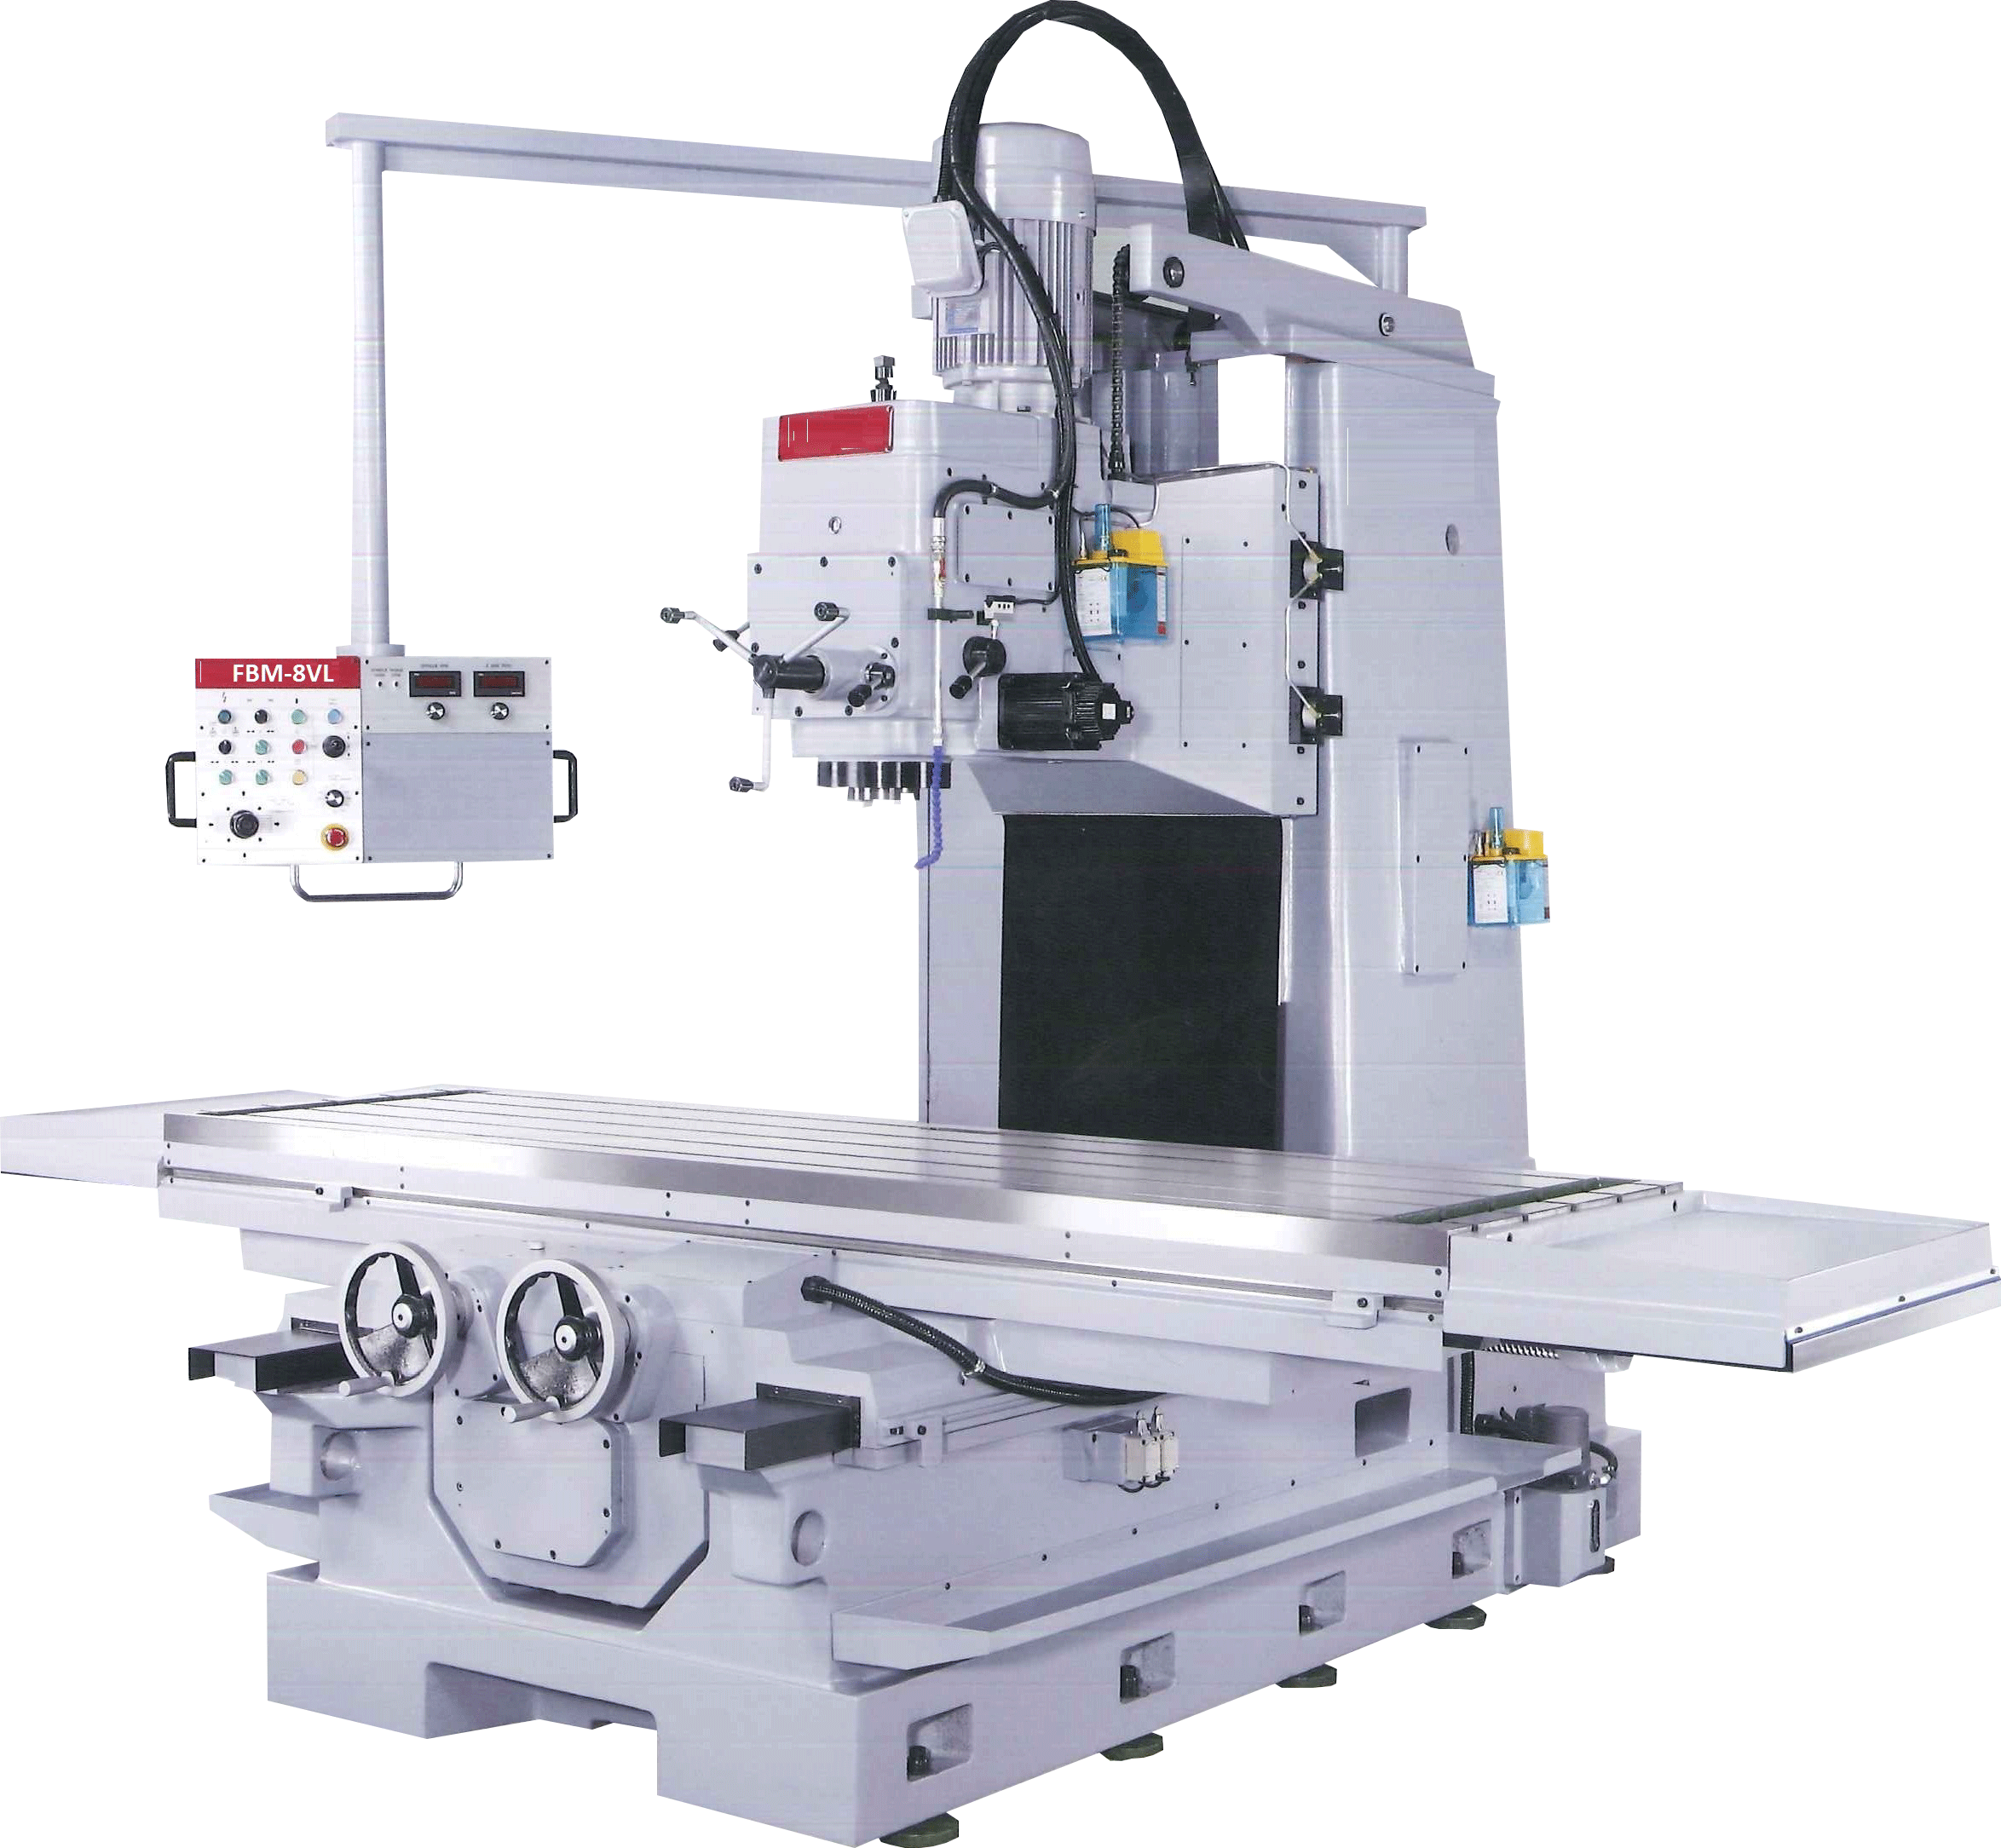 ACRA MODEL 8VL HEAVY DUTY BED TYPE VERTICAL BORING & MILLING MACHINE